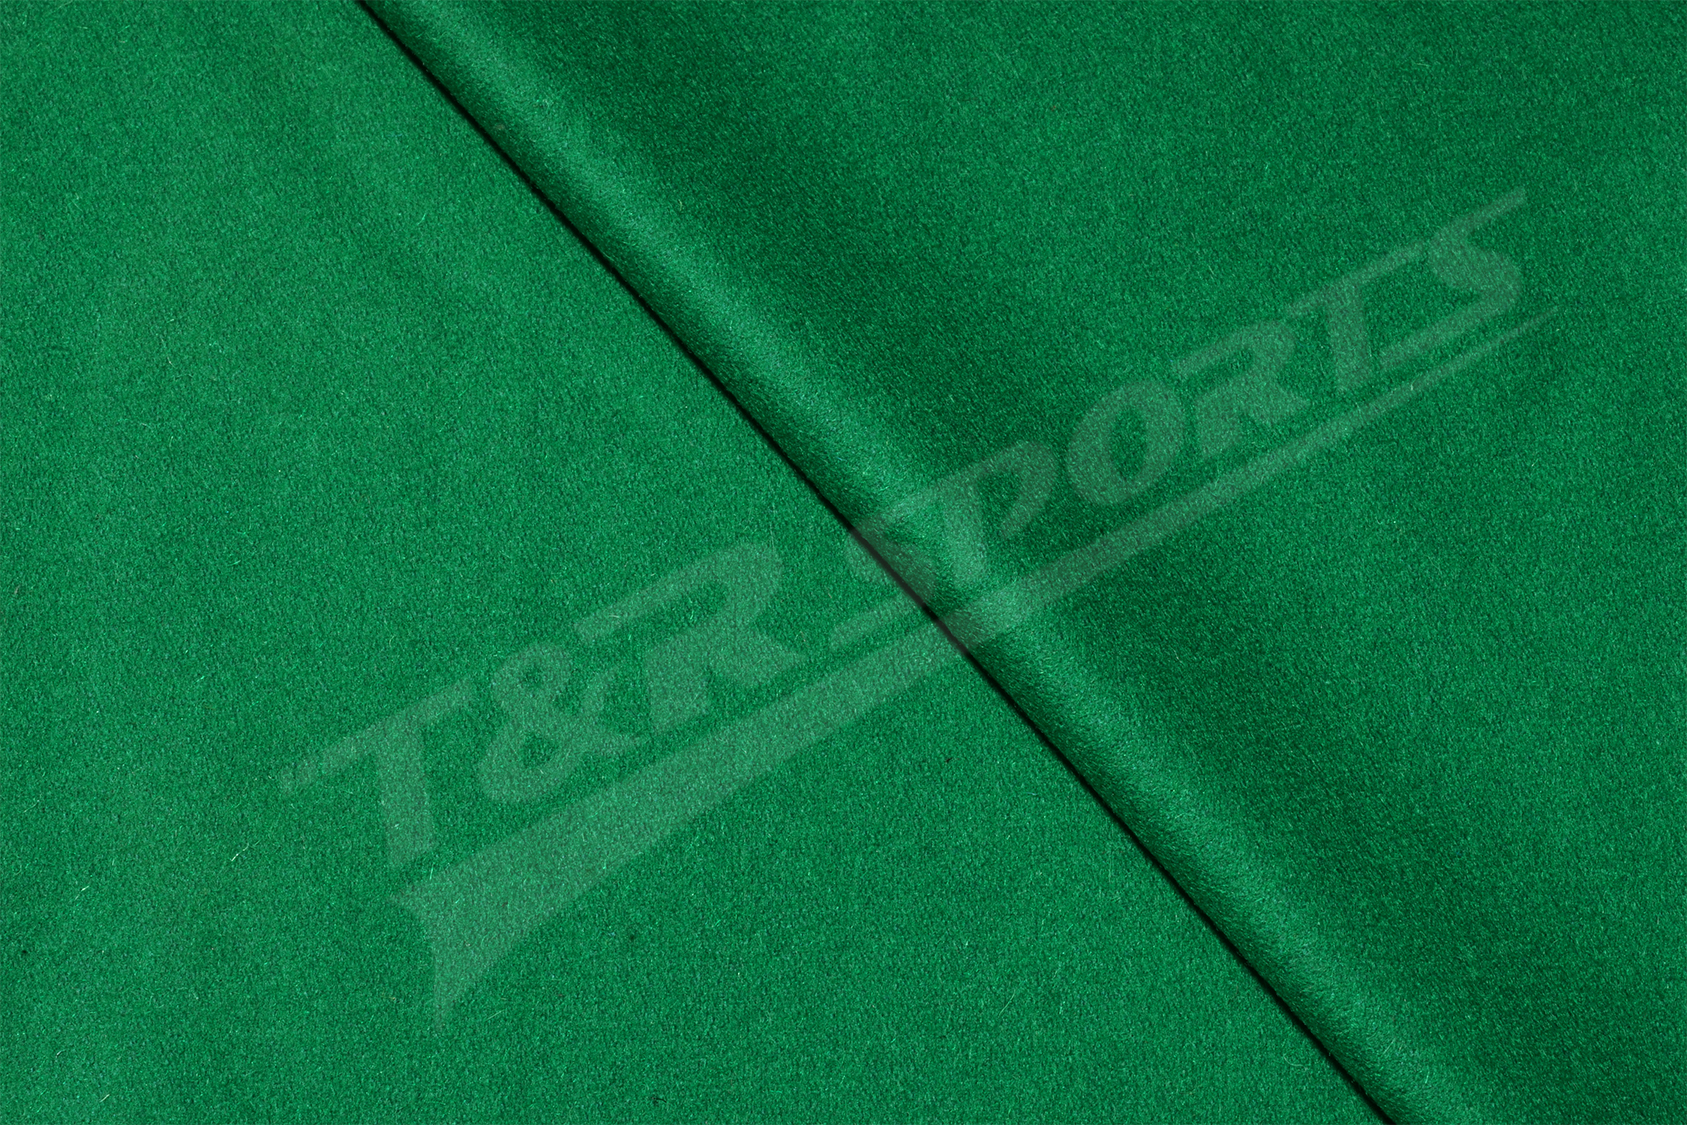 Pool Table Felt Texture 1460 VIZUALIZE